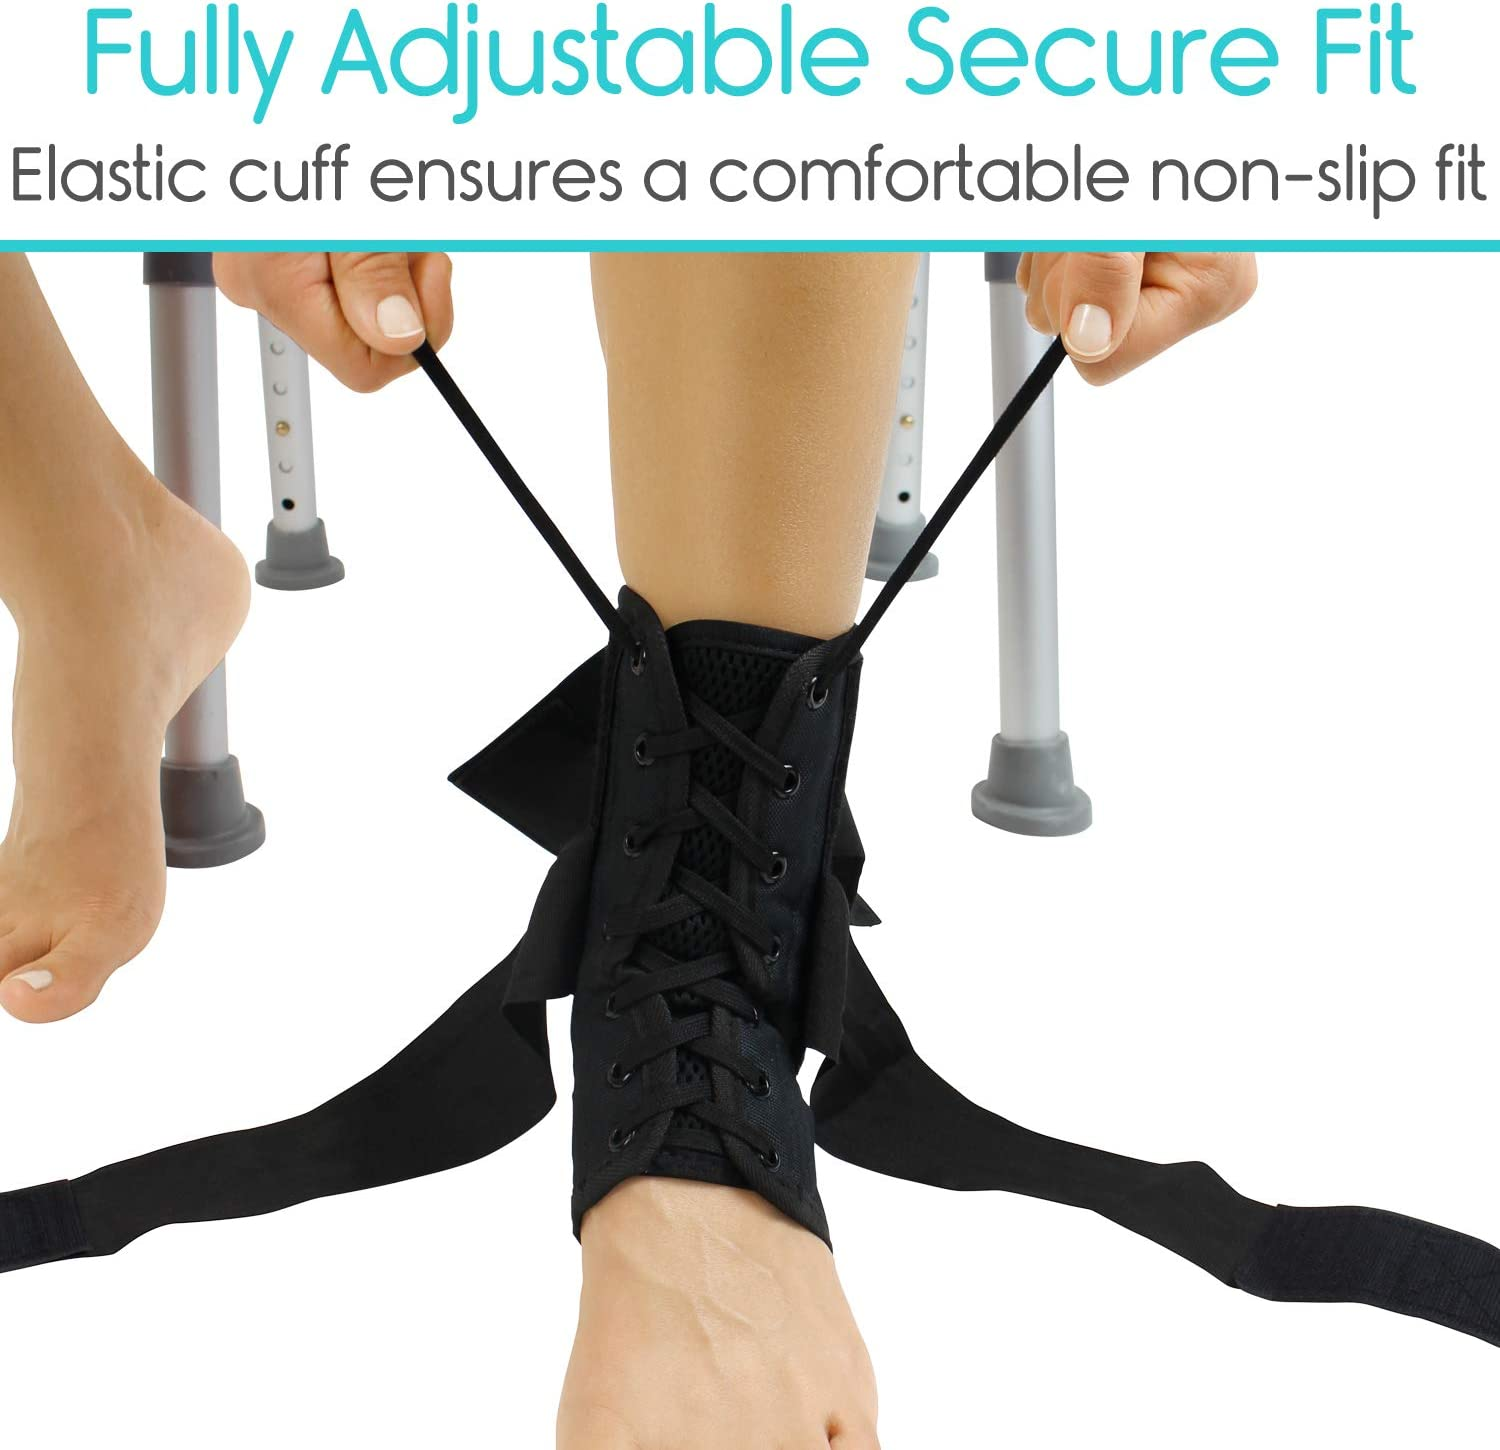 Vive Lace Up Ankle Brace - Men, Women Foot Support Stabilizer Compression Sleeve - Sprained Adjustable Leg Splint - Sprain Rolled Immobilizer Wrap Guard for Running, Volleyball, Basketball, Soccer (L): Industrial & Scientific